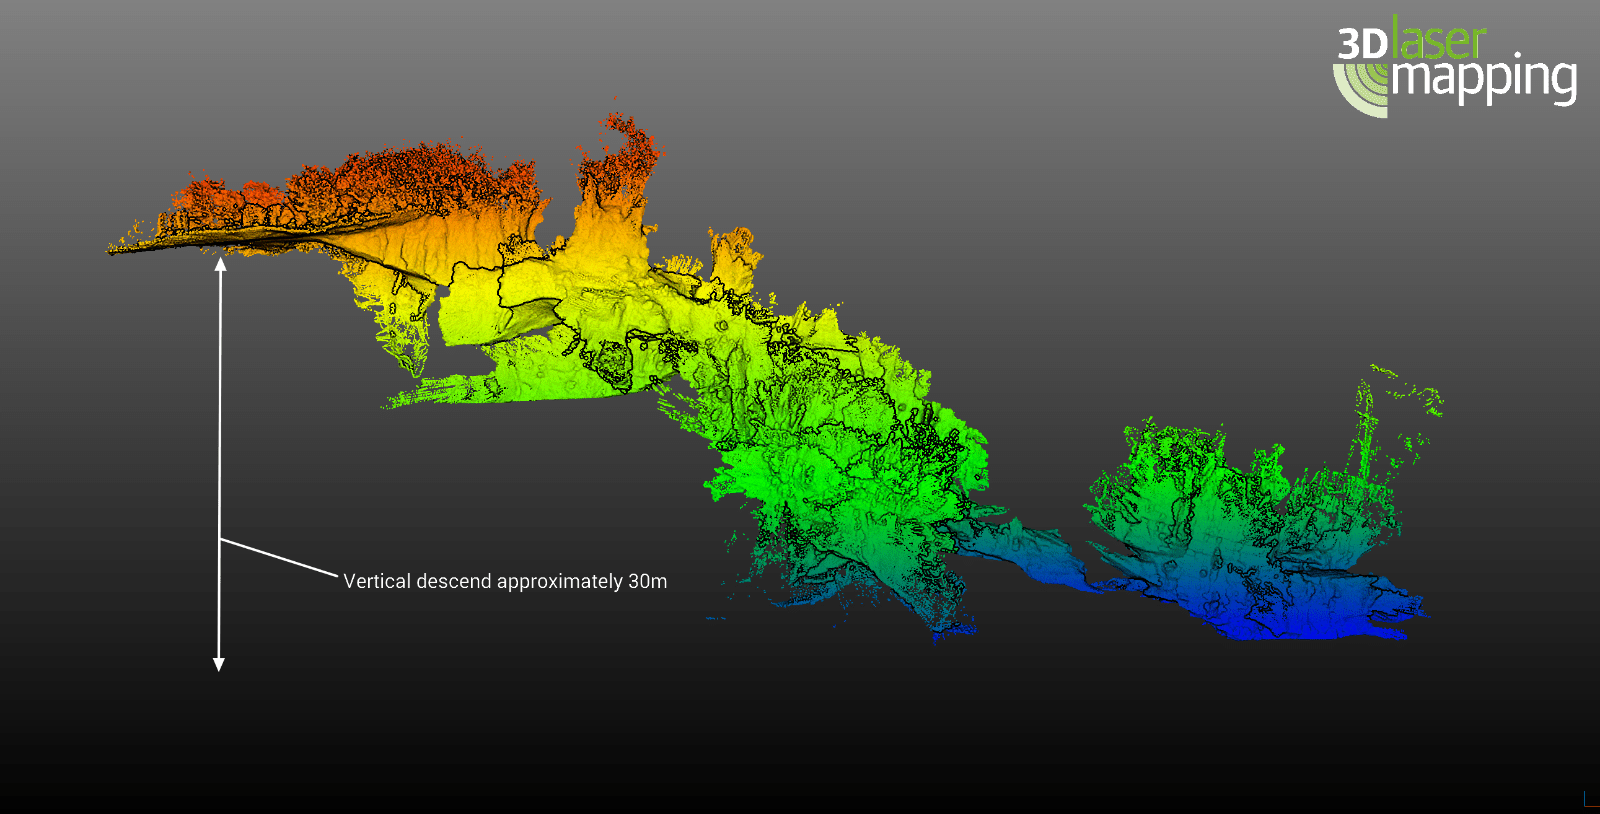 Fig. 4 – Right side view of the point cloud data from the Rising Star cave; the points are coloured by elevation height, meaning red is the highest elevation and blue is the lowest elevation.